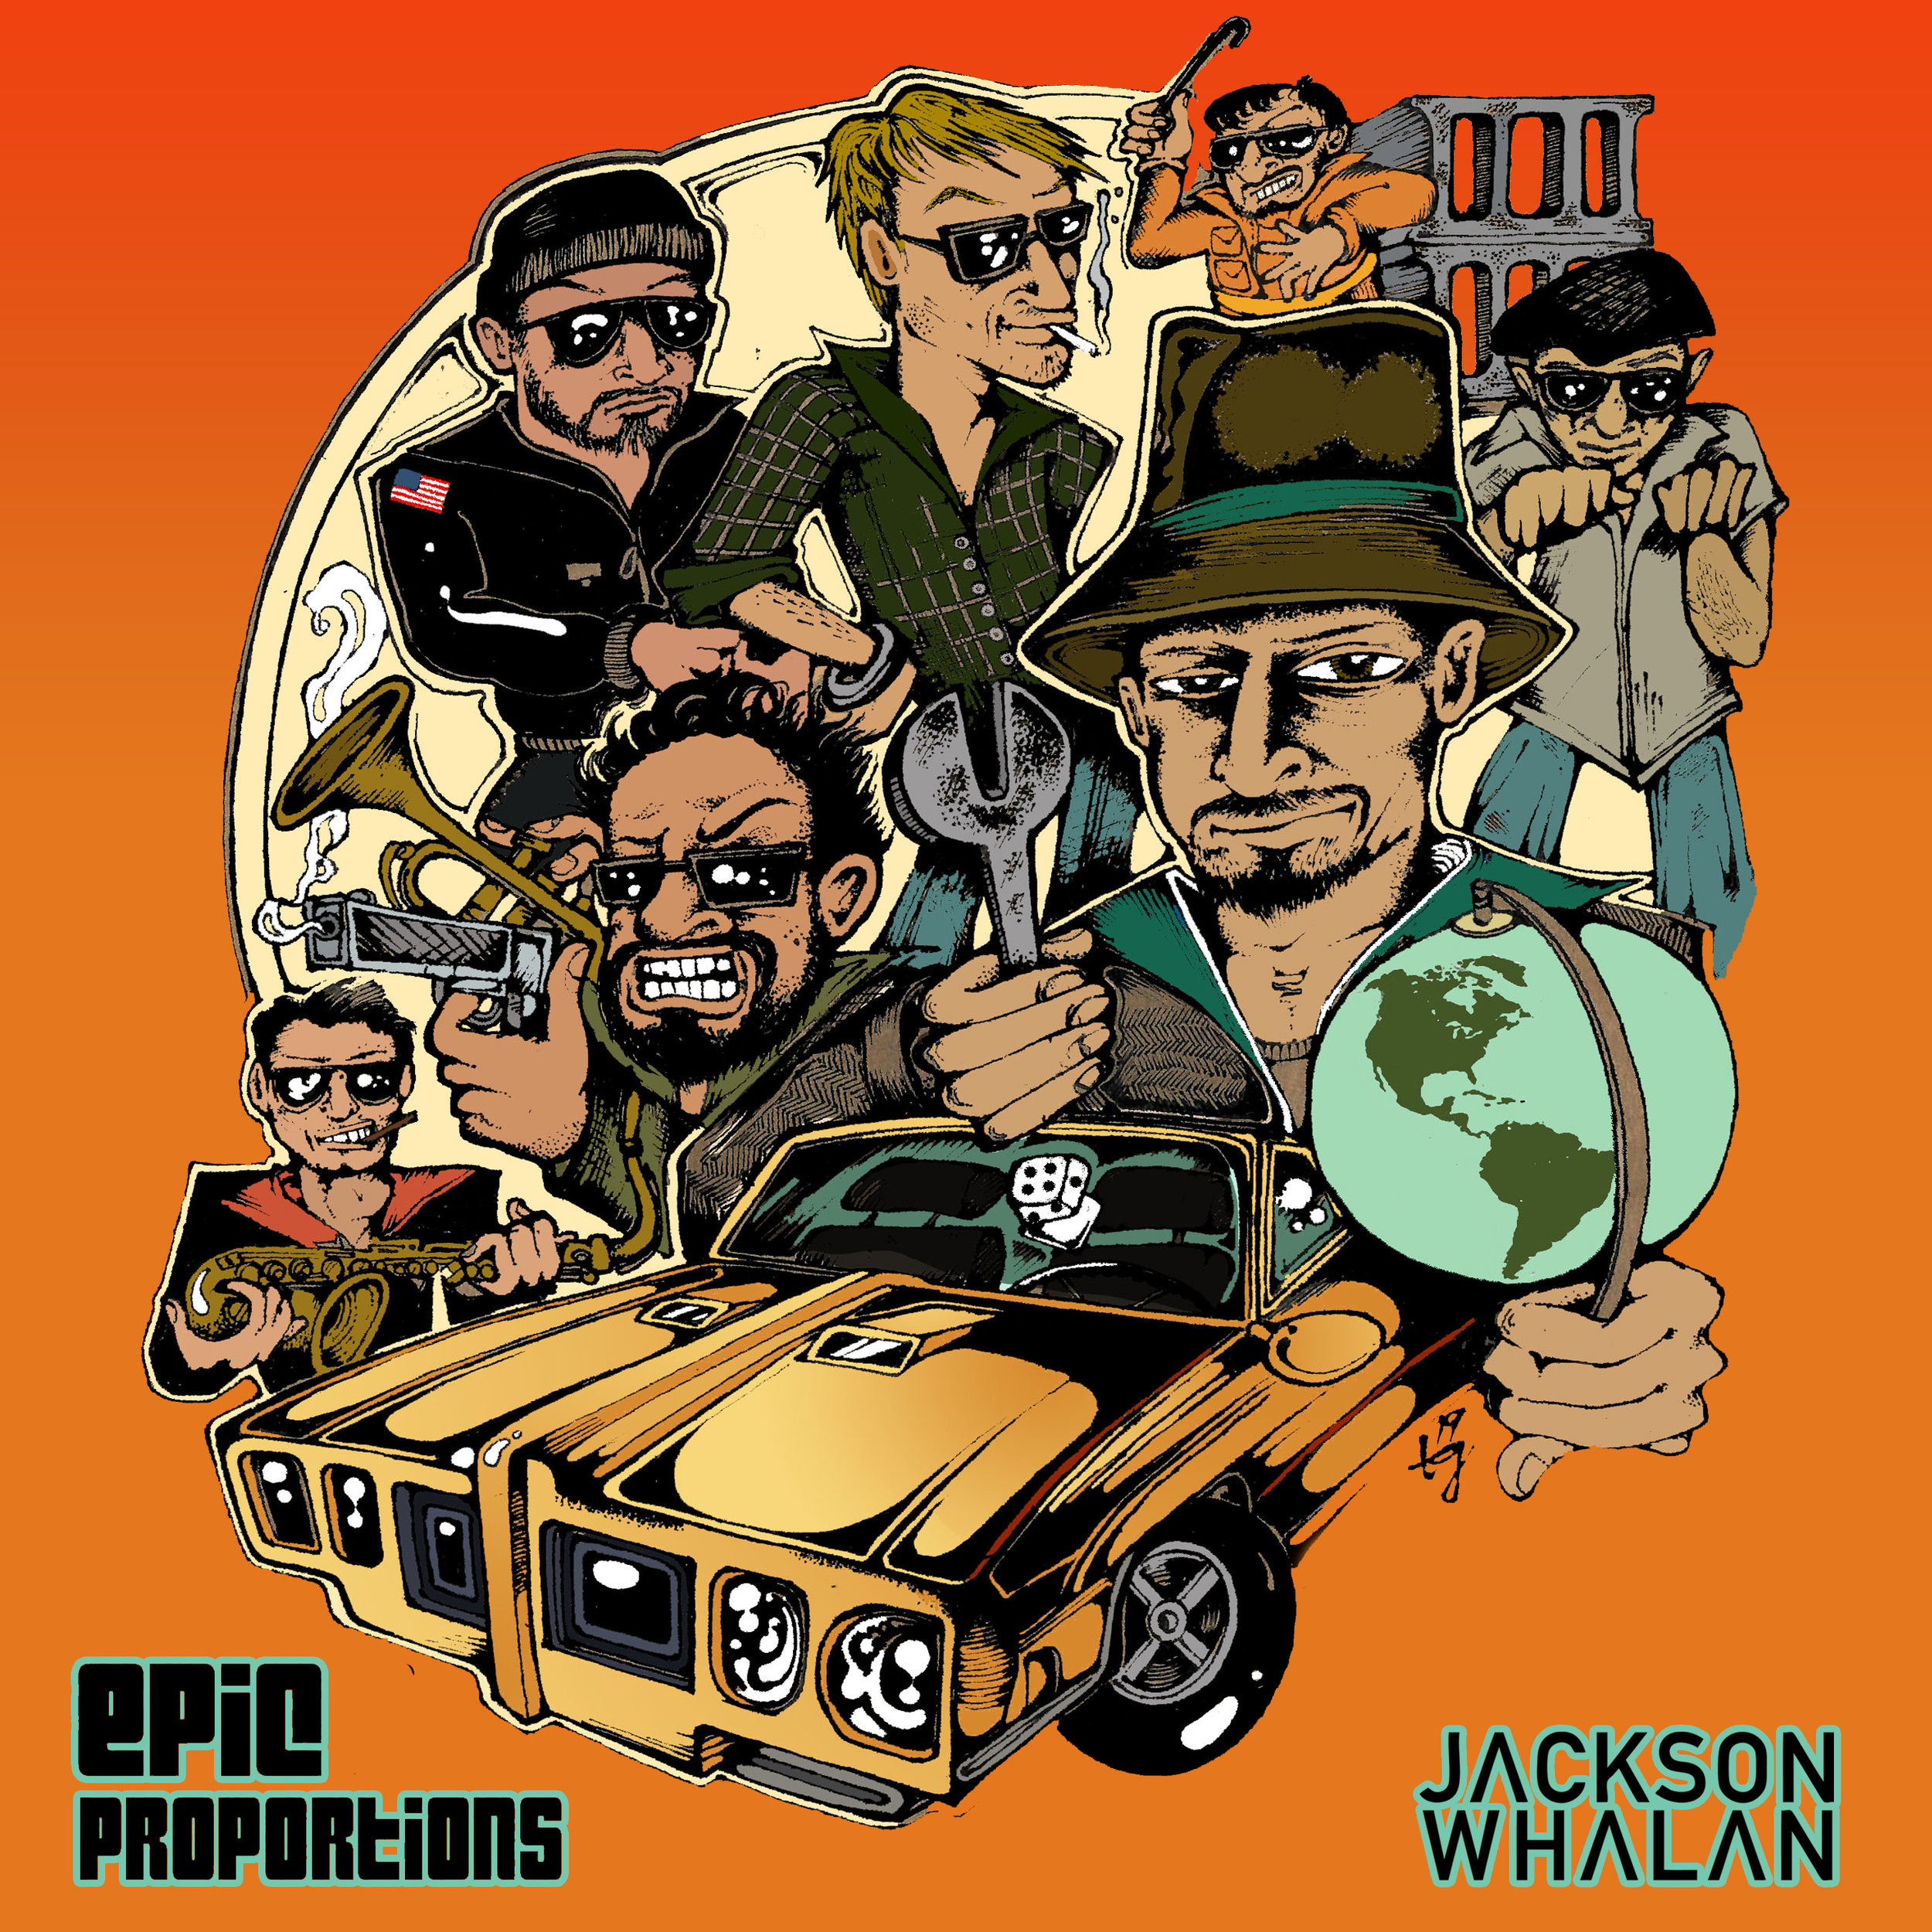 epic-proportions-live-band-jackson-whalan-hip-hop-rap-metal-neosoul-jazz-fusion-music-beats-instruments-indie-funk-rockwood-music-hall-underground-conscious-70s-retro-recording-spotify-itunes-earmilk-soundcloud-bandcamp-whalen-snag-music-video-rap-punk